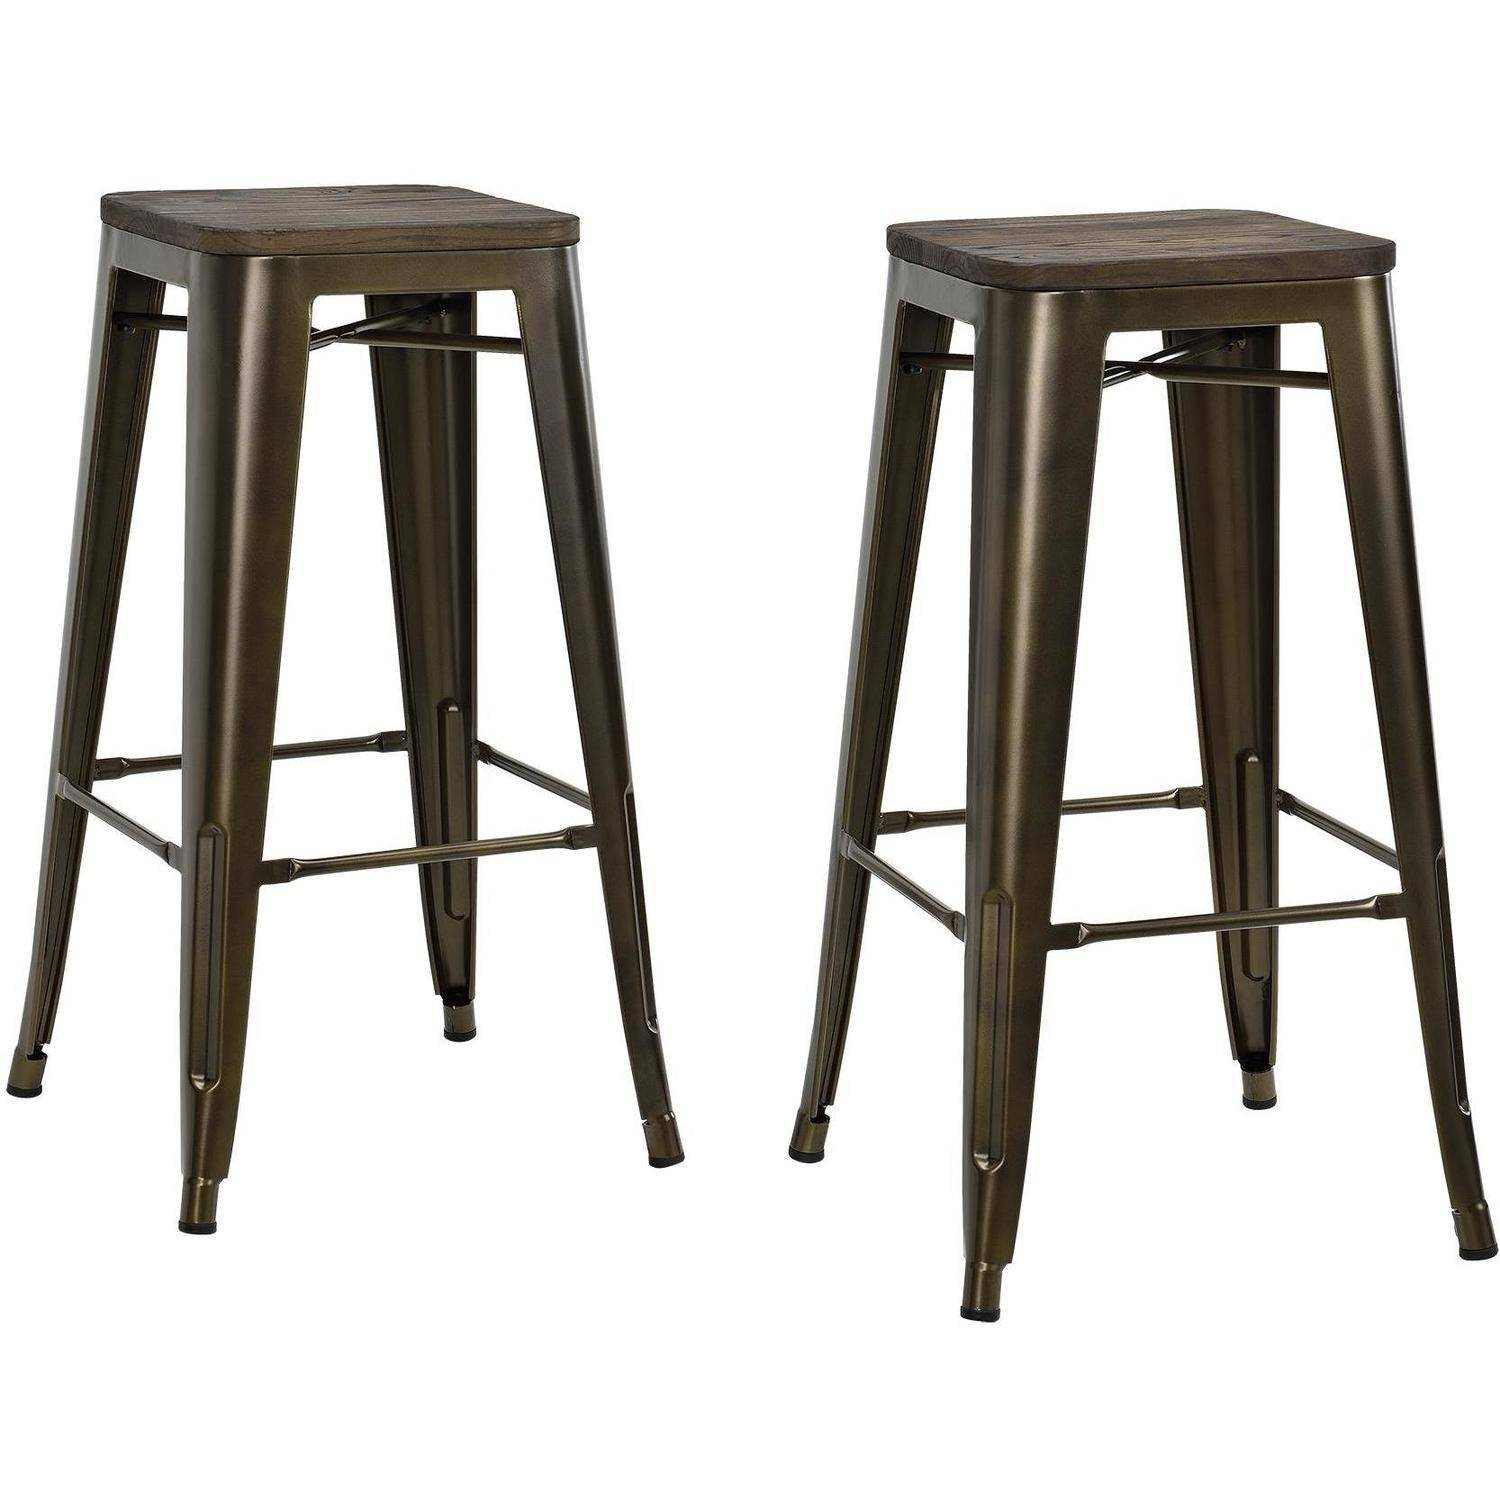 Dhp Fusion 30 Metal Backless Bar Stool With Wood Seat Set Of 2